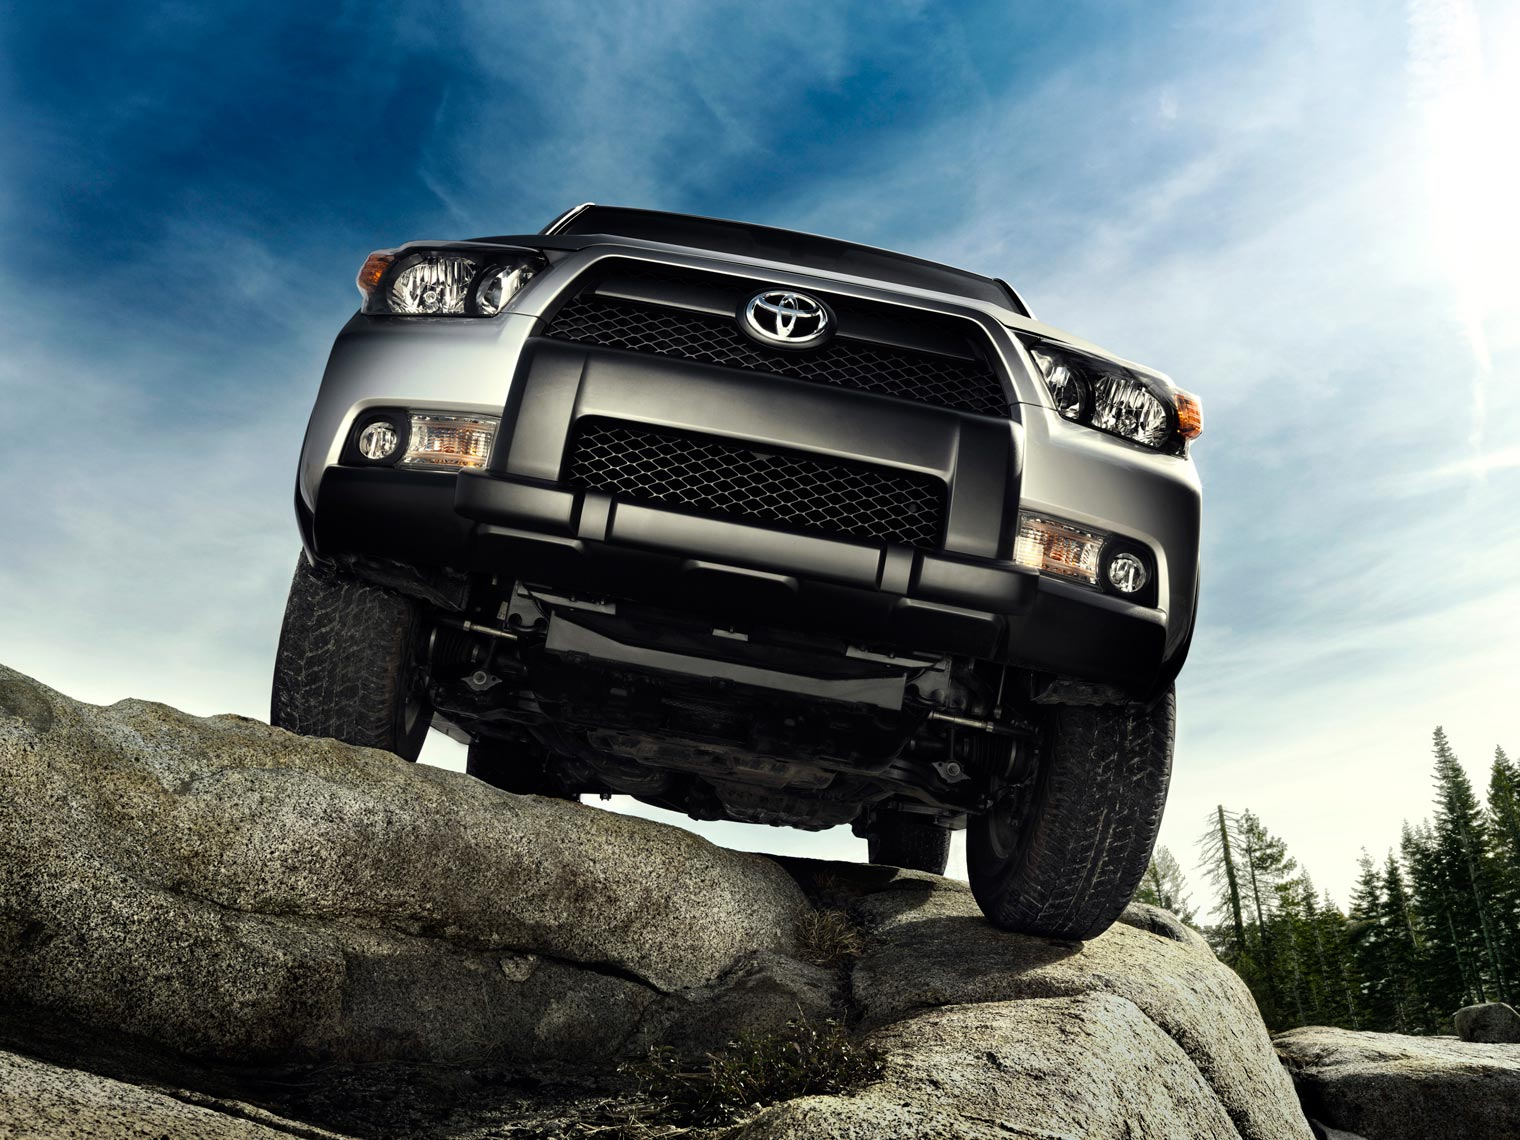 4Runner_GroundClearance_crop-DUP1.jpg